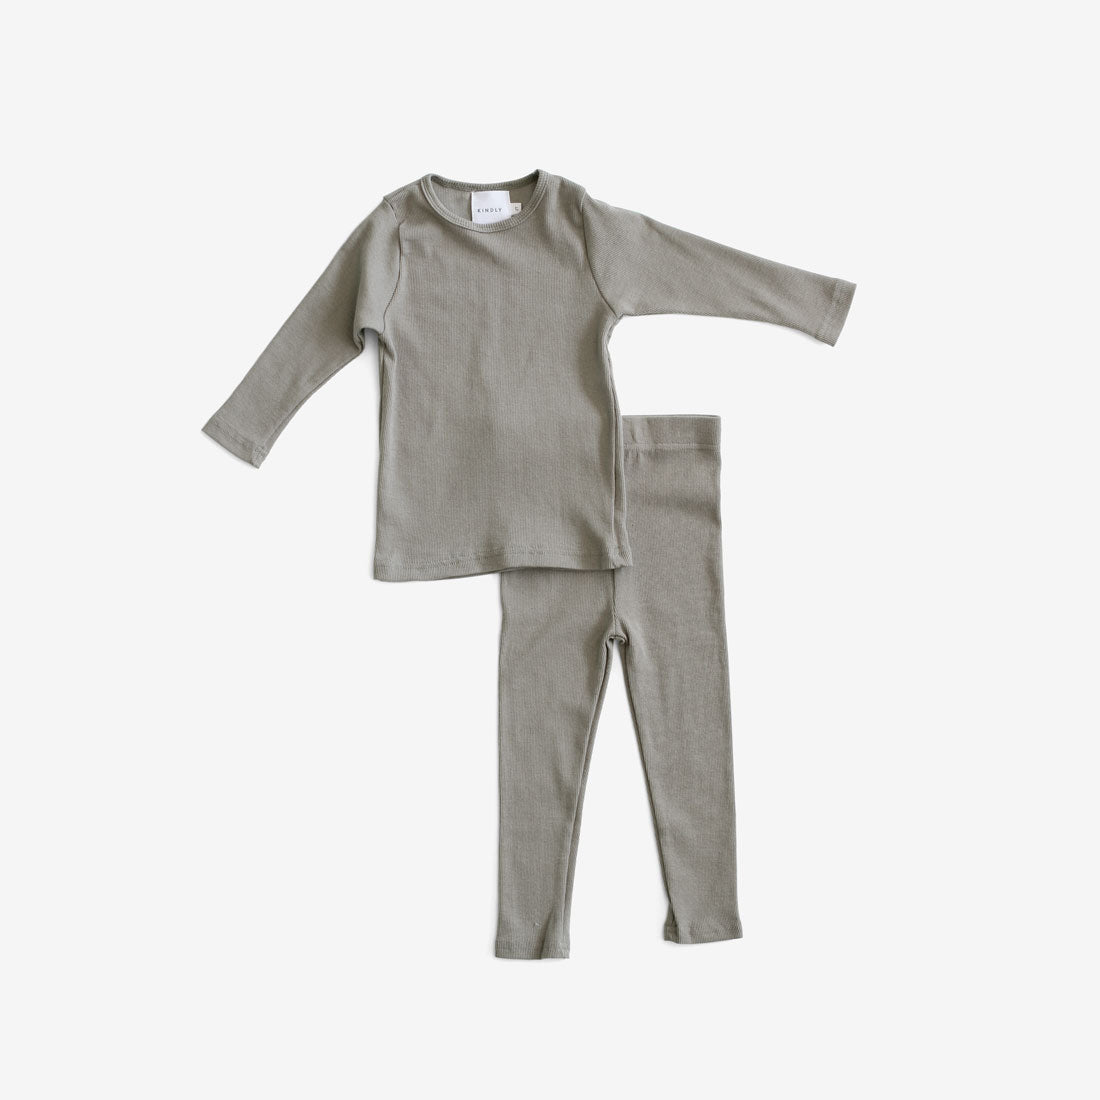 Day/Night Cotton Rib PJ Set - Sage